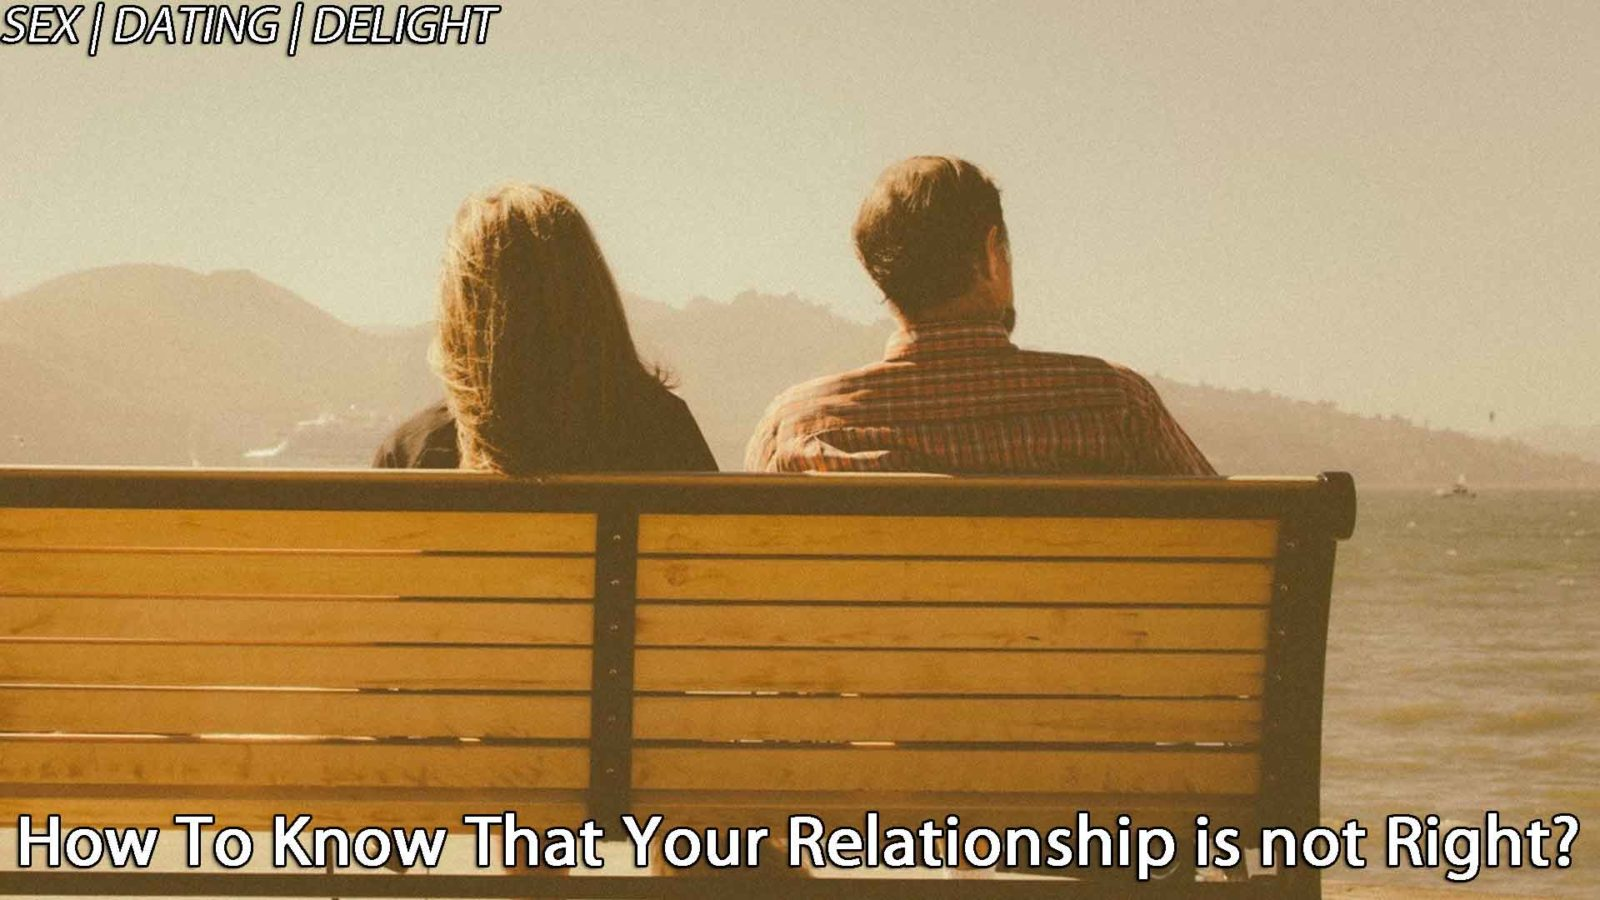 How-to-know-that-your-relationship-is-not-rightHow-to-know-that-your-relationship-is-not-right